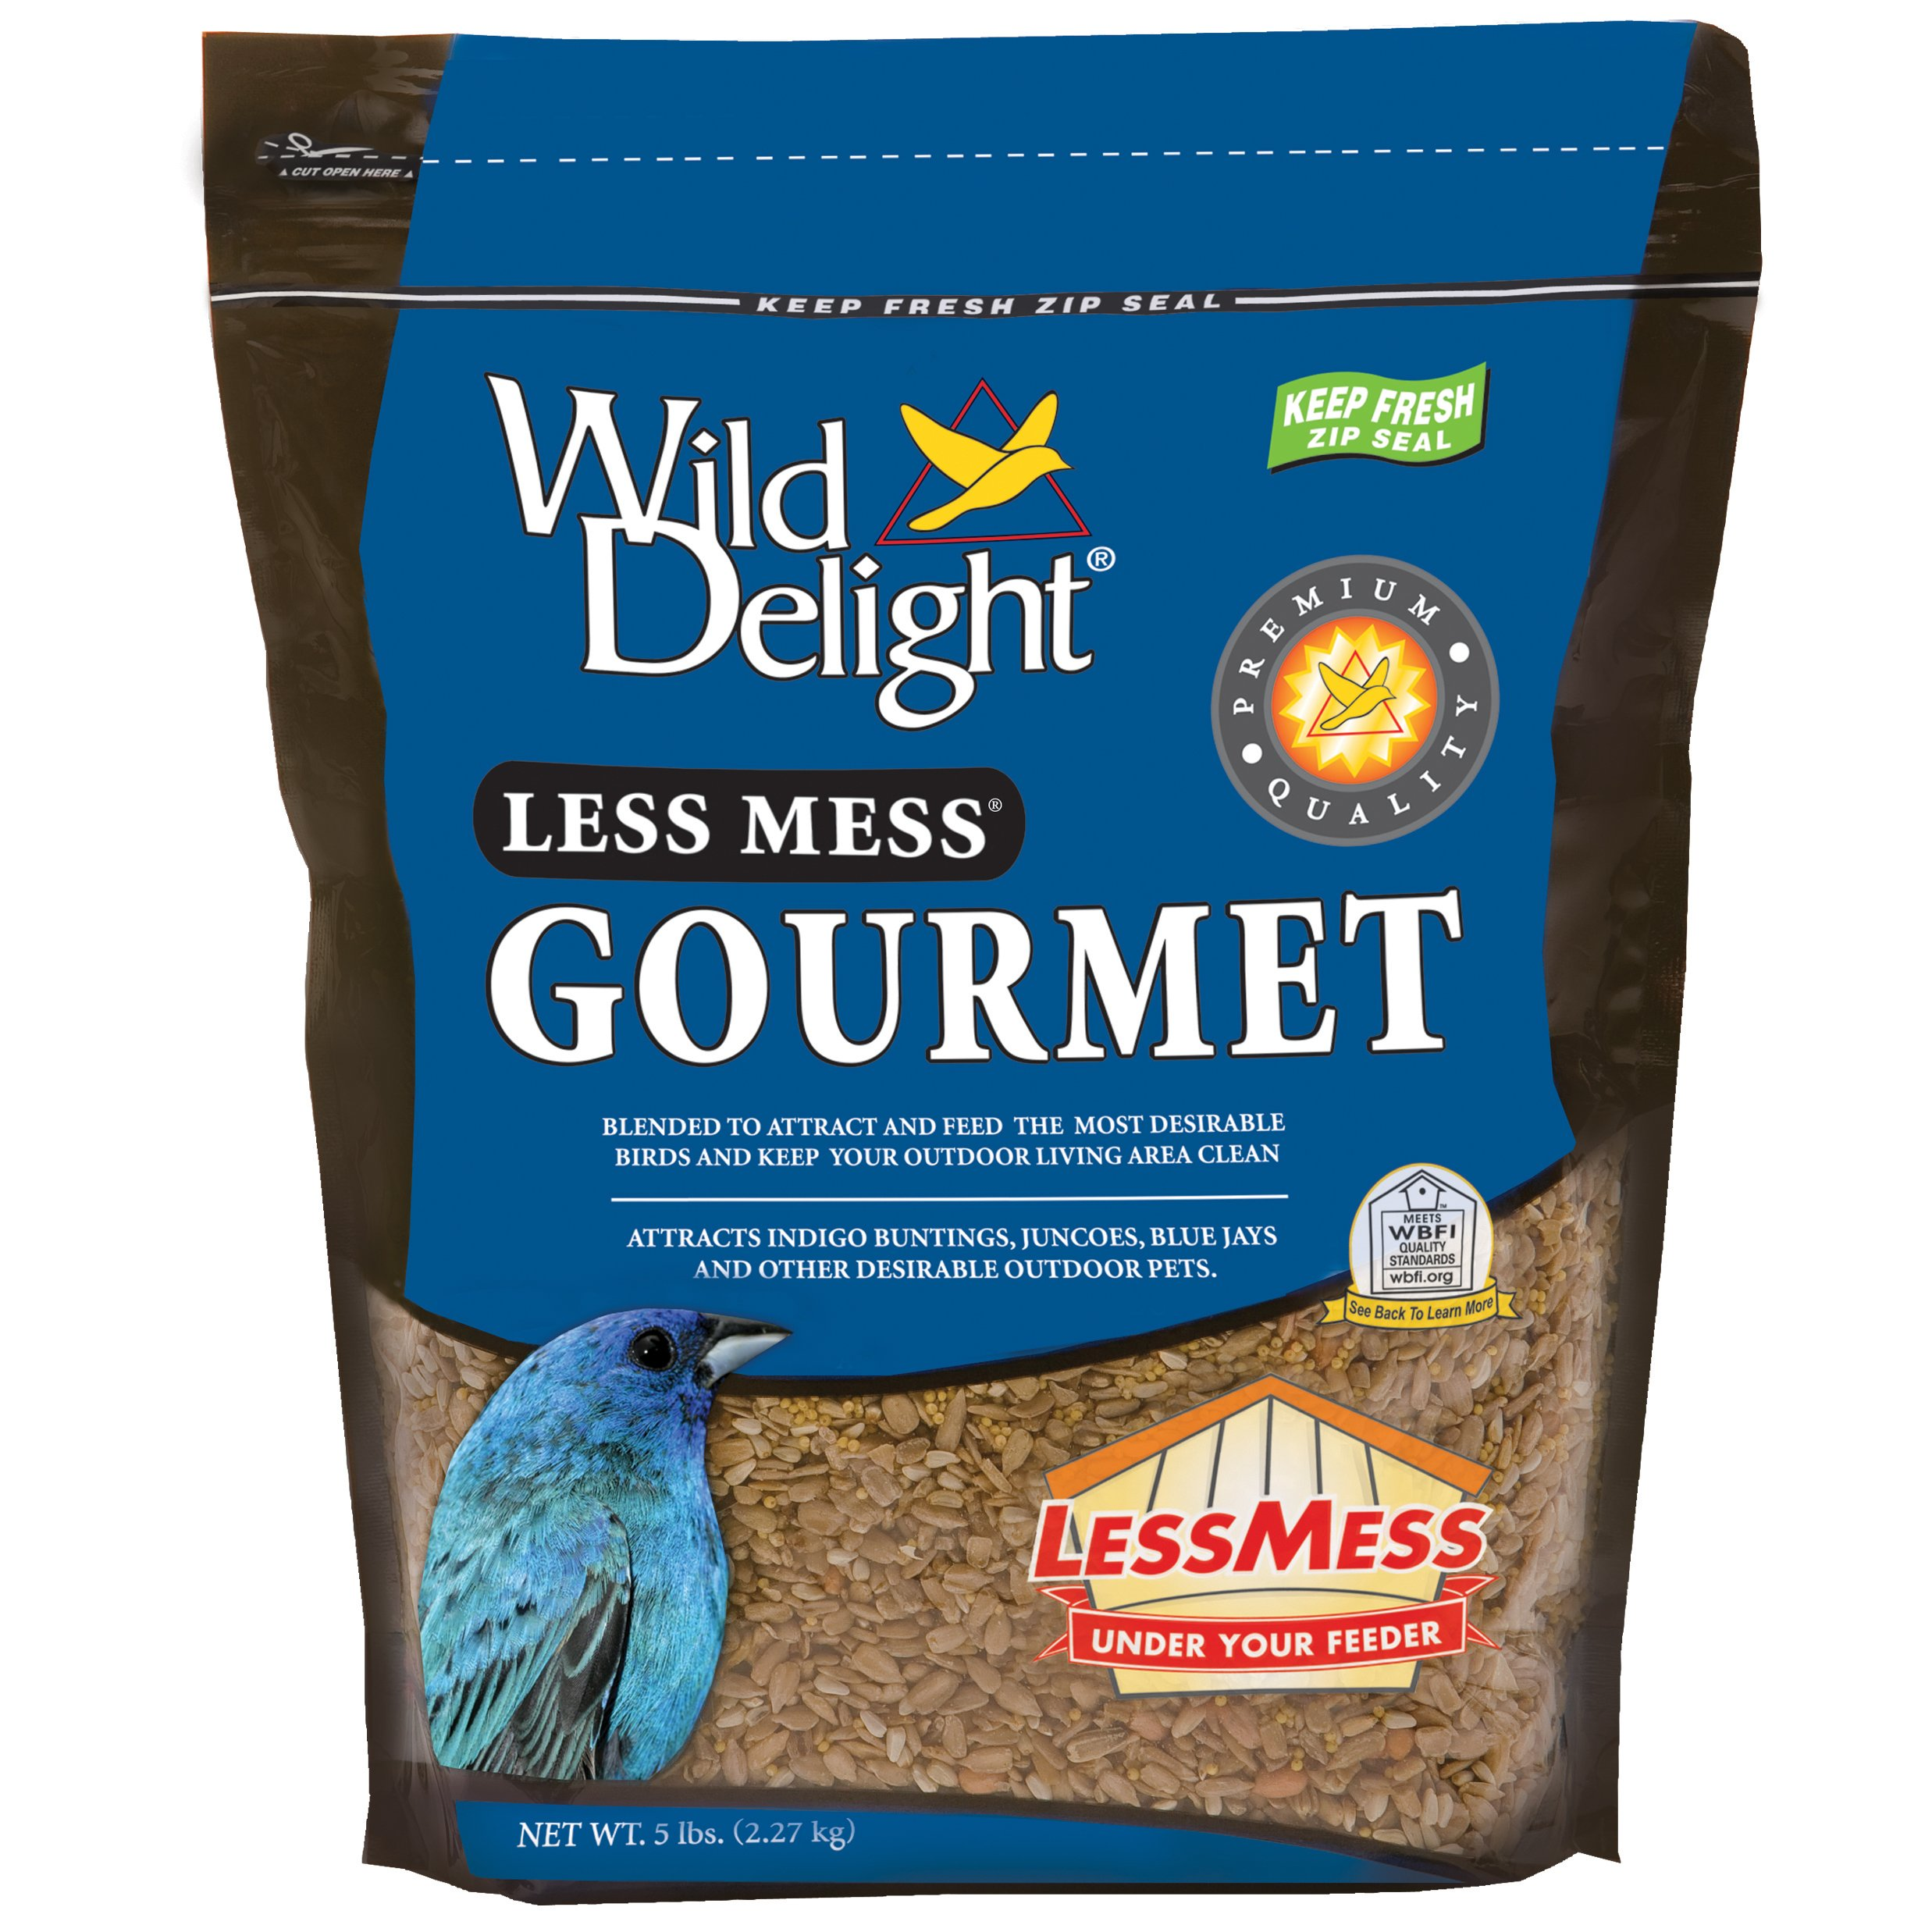 Wild Delight Less Mess Gourmet Food, 5lb by Wild Delight